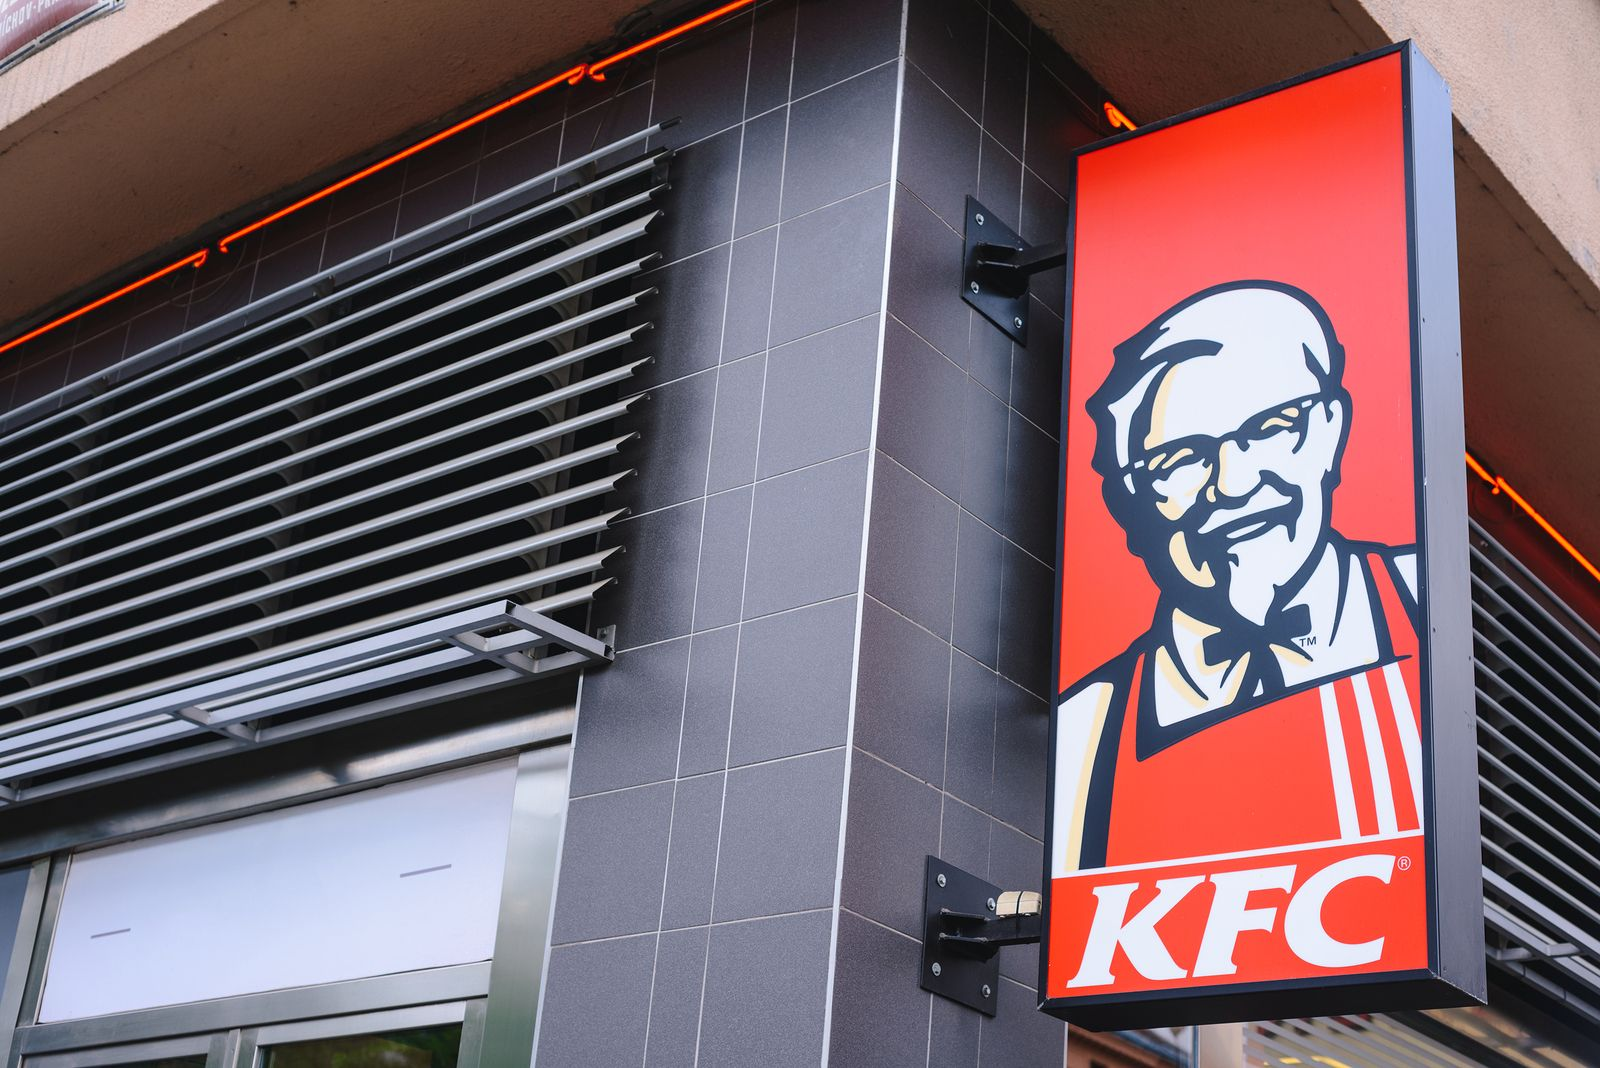 Anti-exploitation groups are calling for a restaurant-wide boycott, alleging a recently aired KFC ad objectifies women.